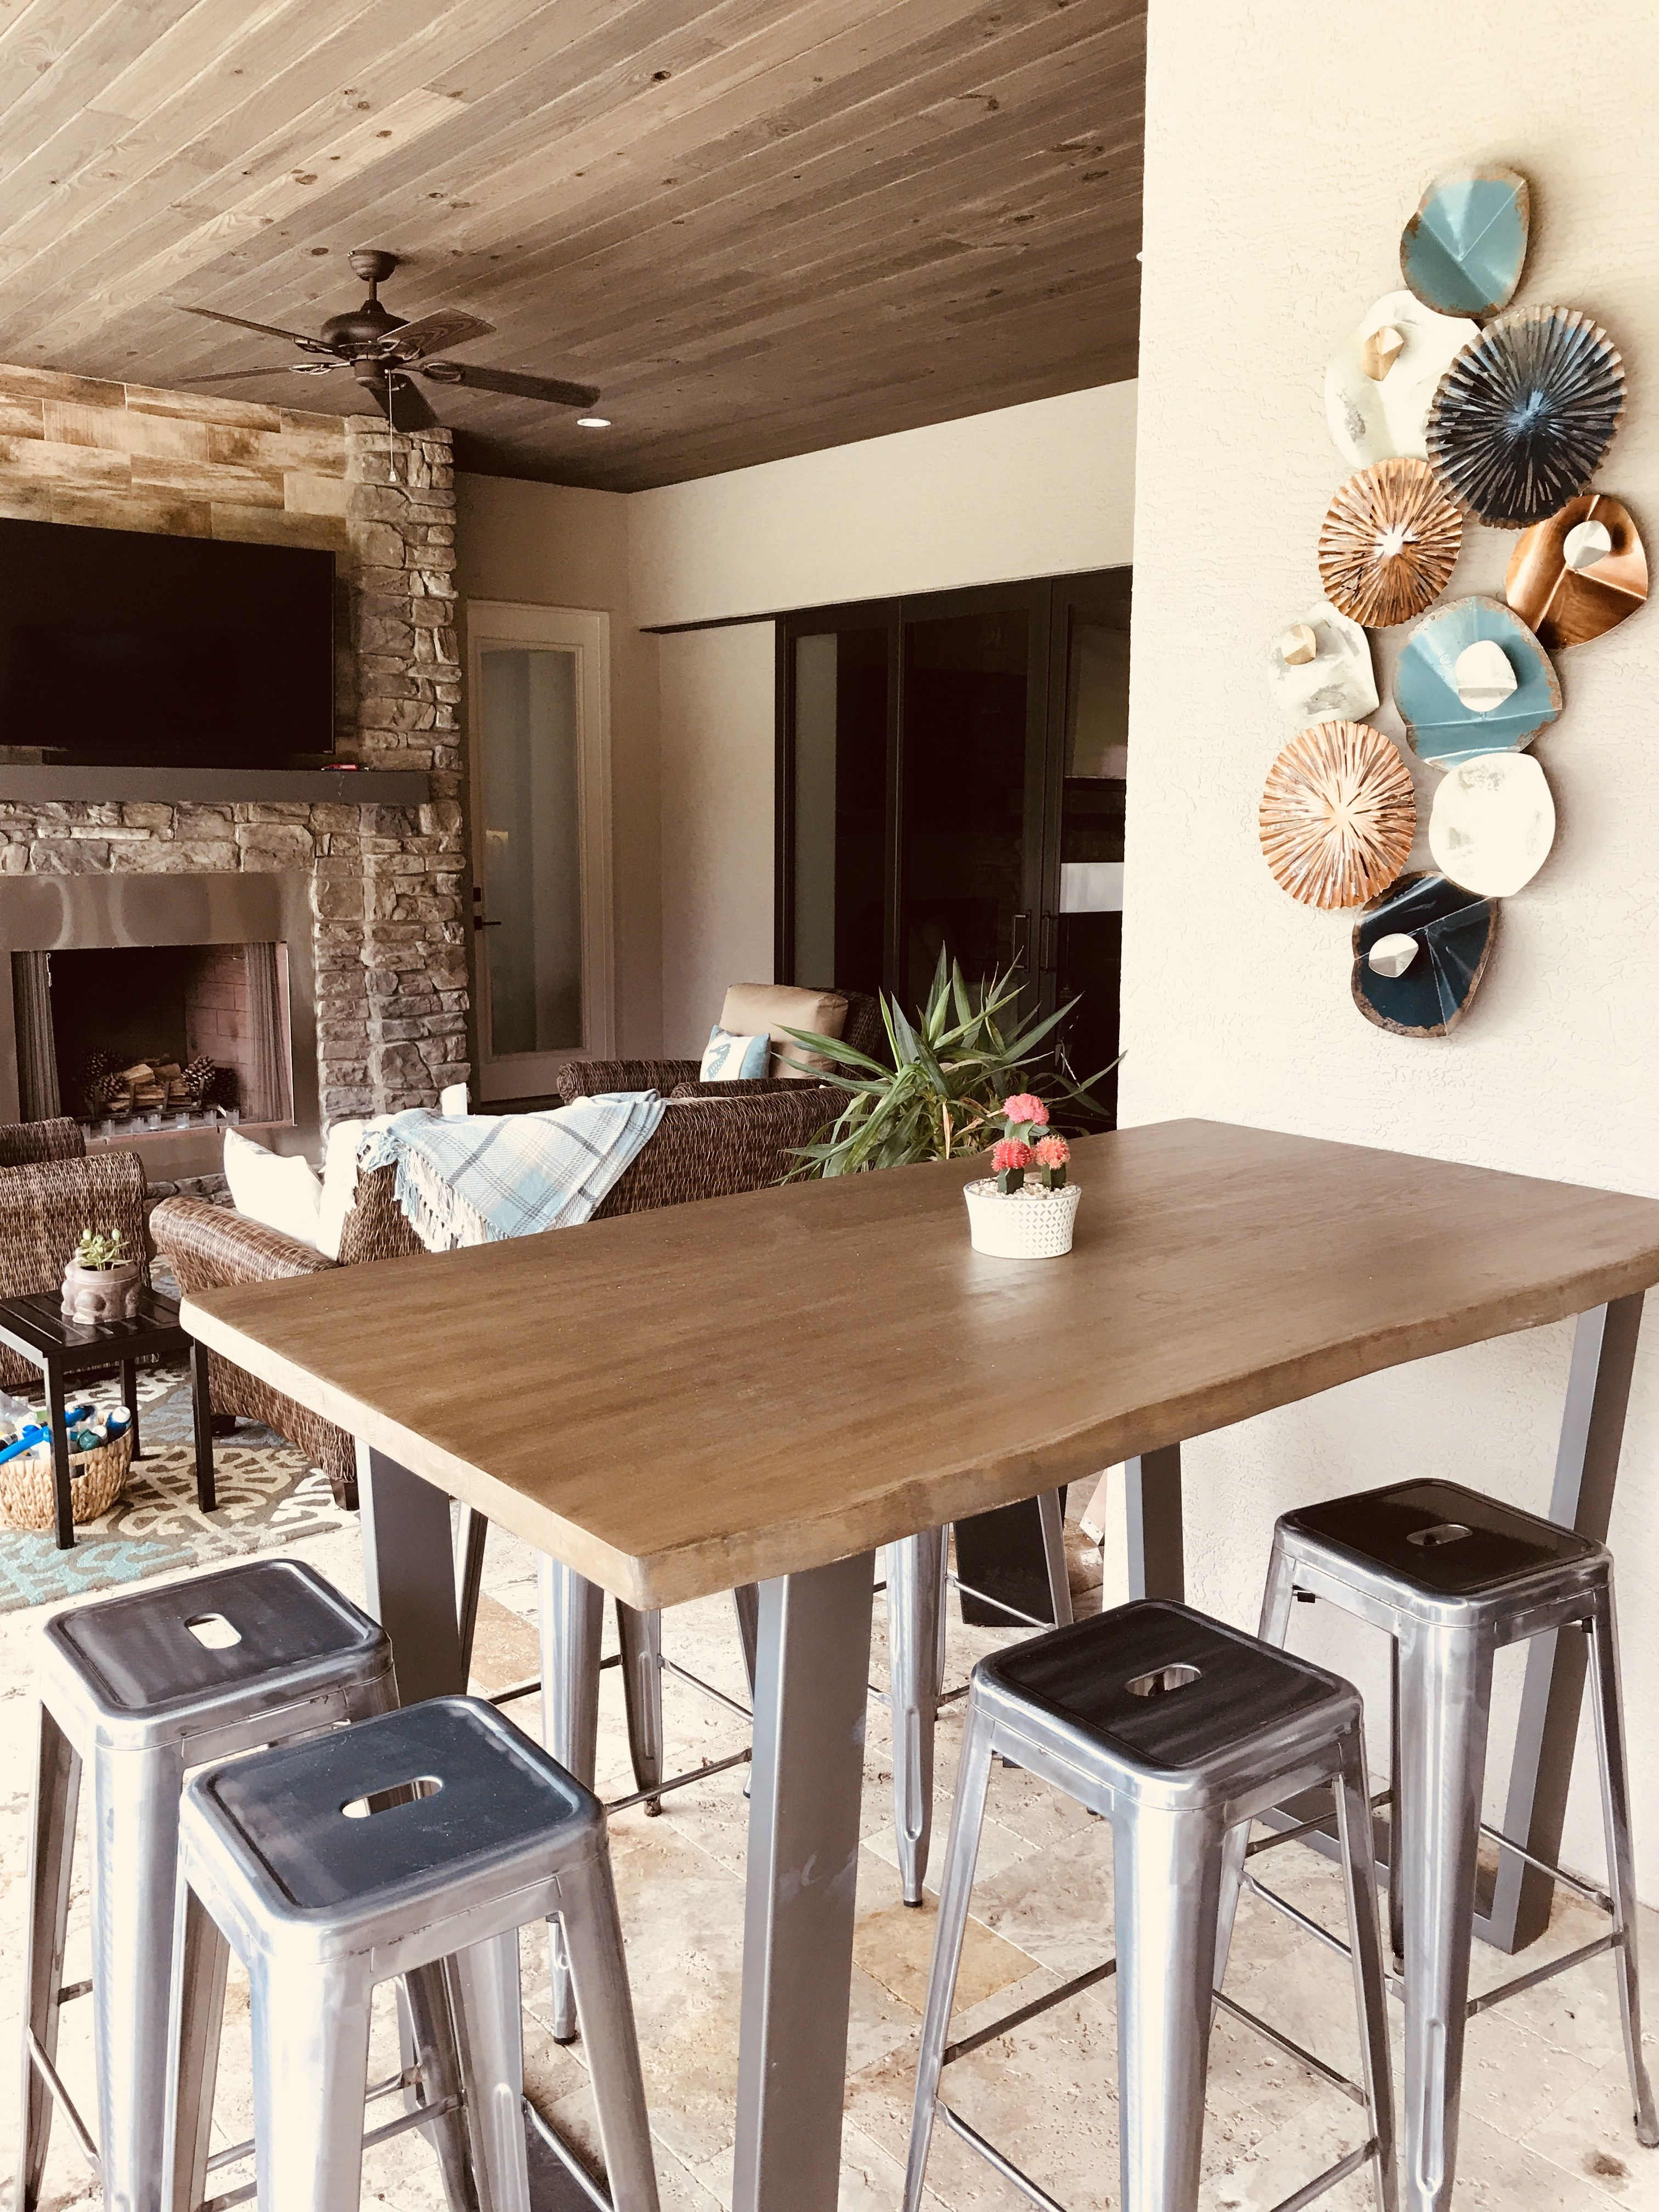 Astoria Live Edge Counter Or Bar Height Table Dining Table In Living Room Bar Height Dining Table Rustic Dining Room Sets